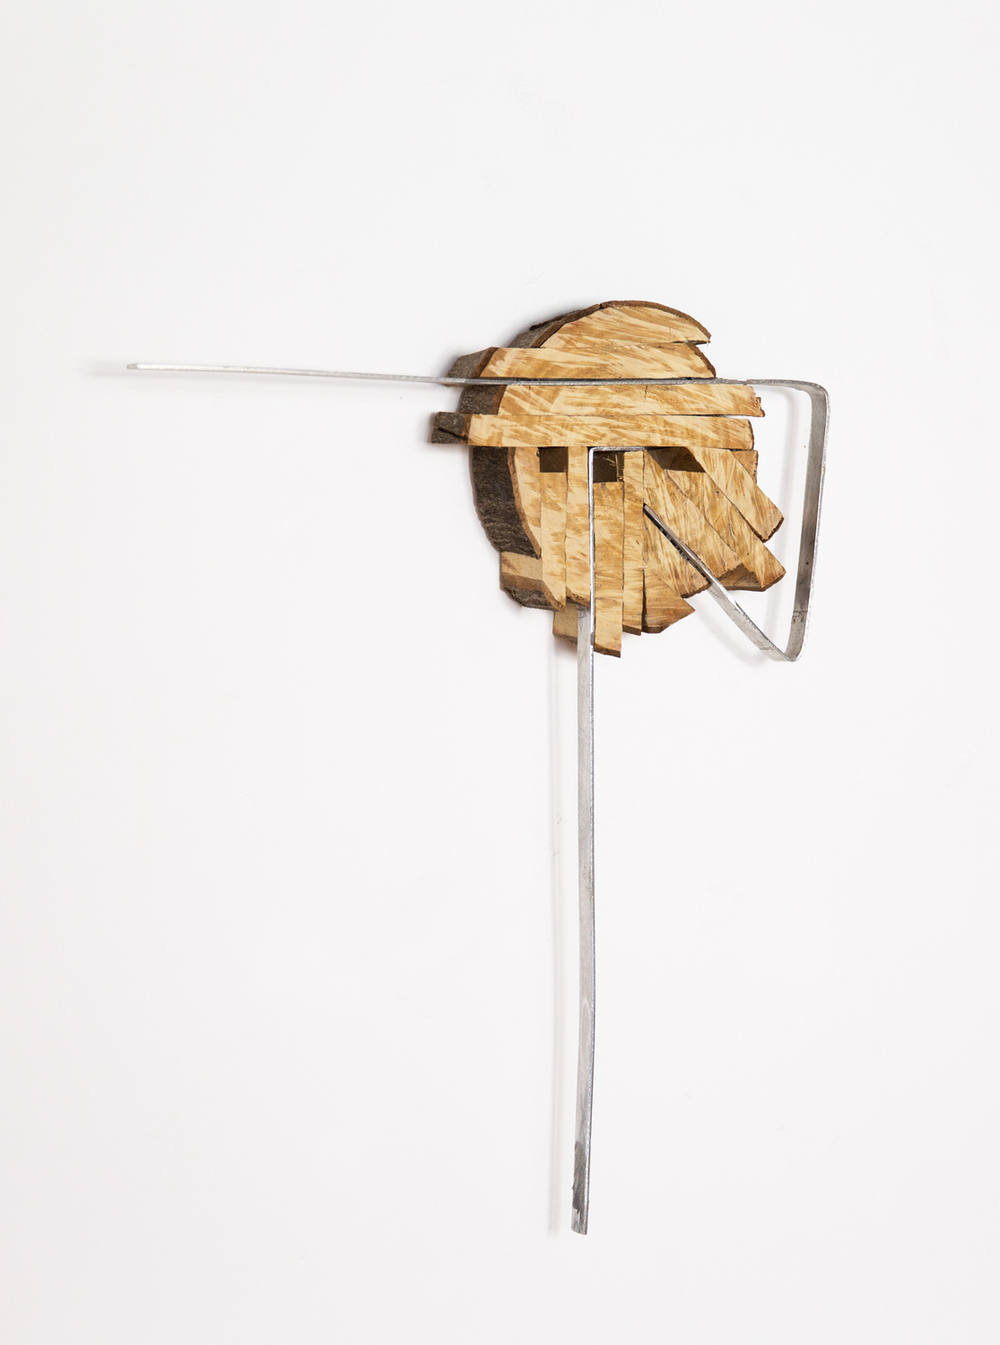 Kishio Suga Divergent Accumulation, Broadened Orientation 1999 Wood and metal 17 ⅜ x 13 ¾ x 1 ¾ in KS018